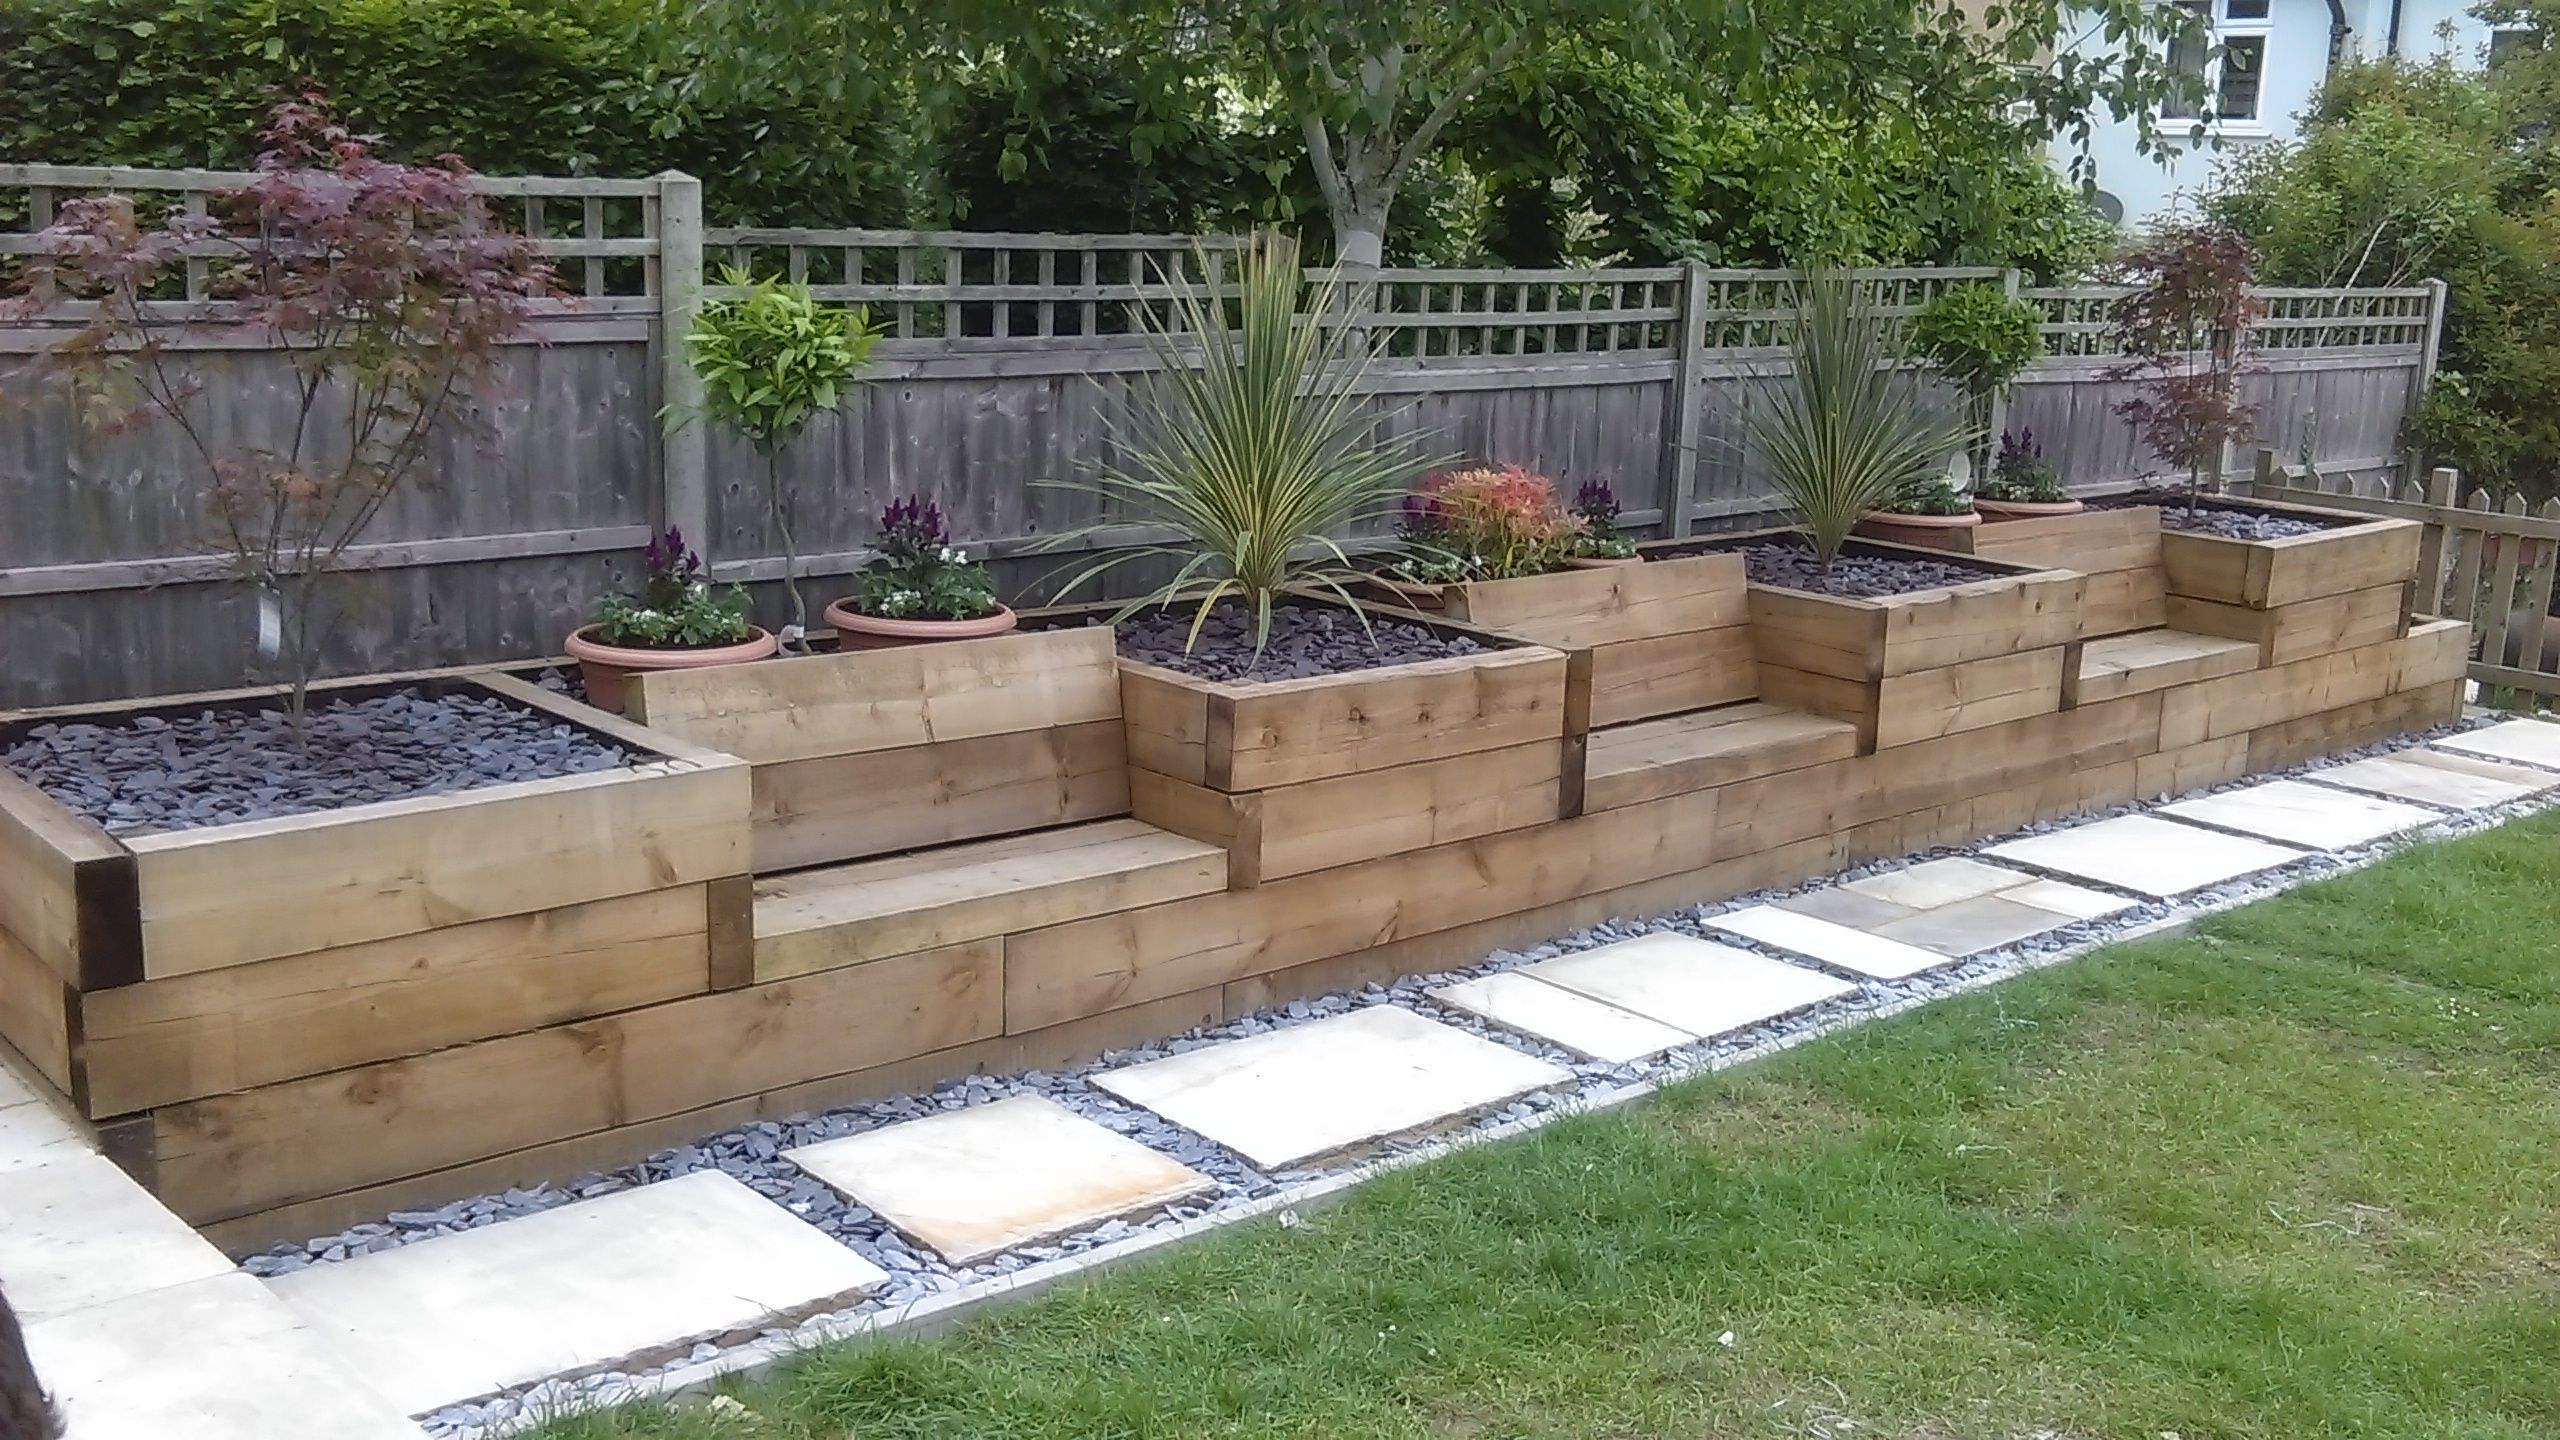 Raised beds with integrated garden seating made from railway